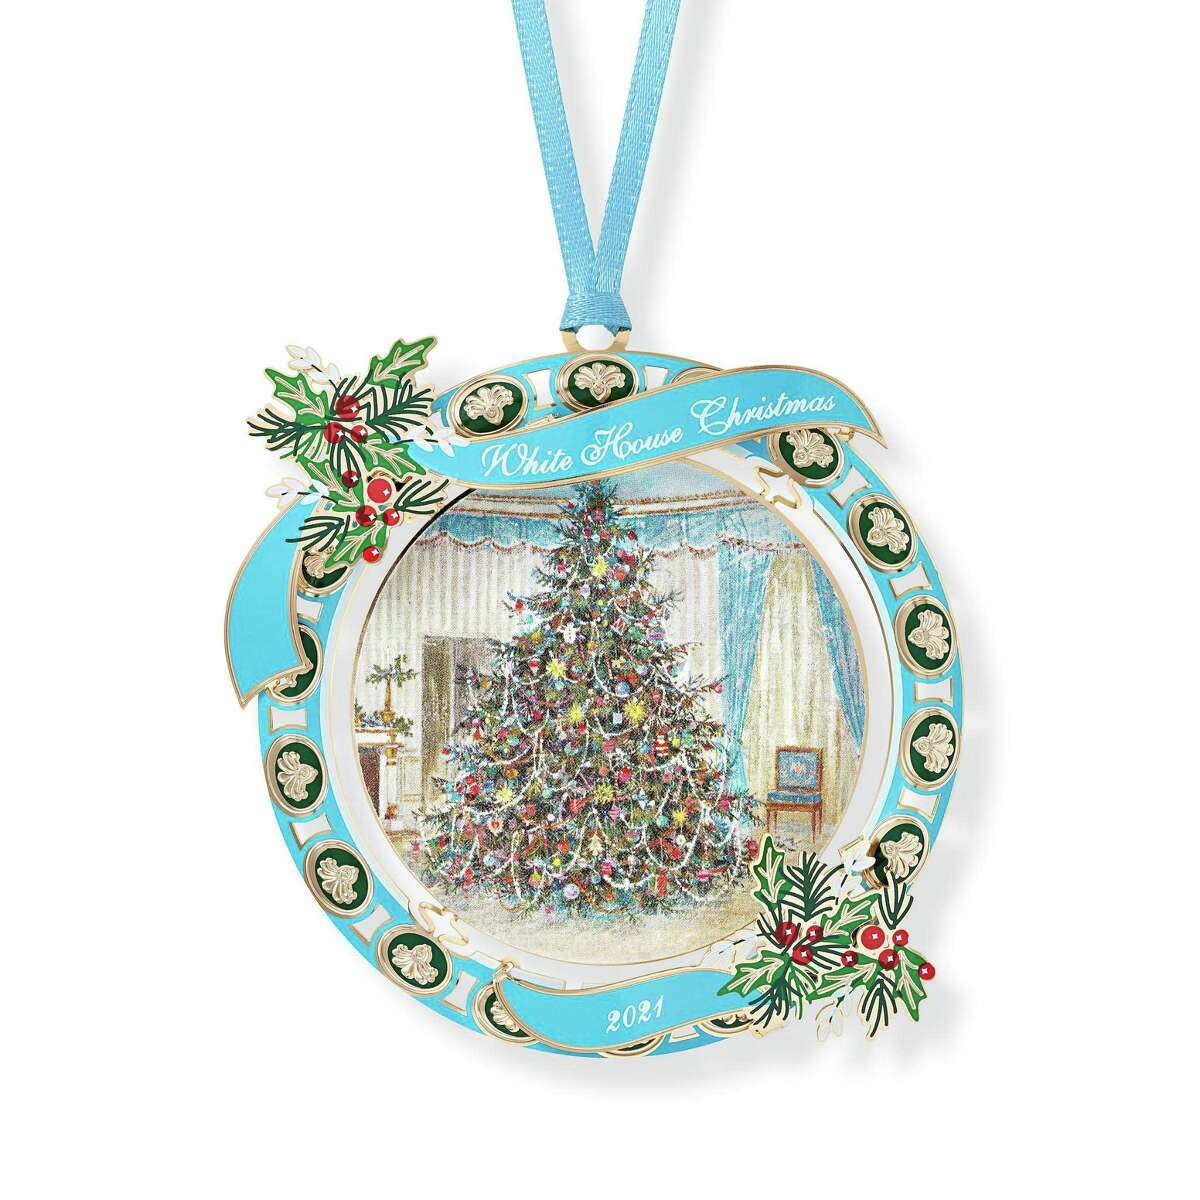 """The 2021 White House Christmas ornament depicts a Christmas tree in the White House Blue Room that was the front of the 1967 White House Christmas card. A quote from former President Lyndon Johnson is on one side of the ornament: """"Our mission is at once the oldest and the most basic of this country: to right wrong, to do justice, to serve man."""""""